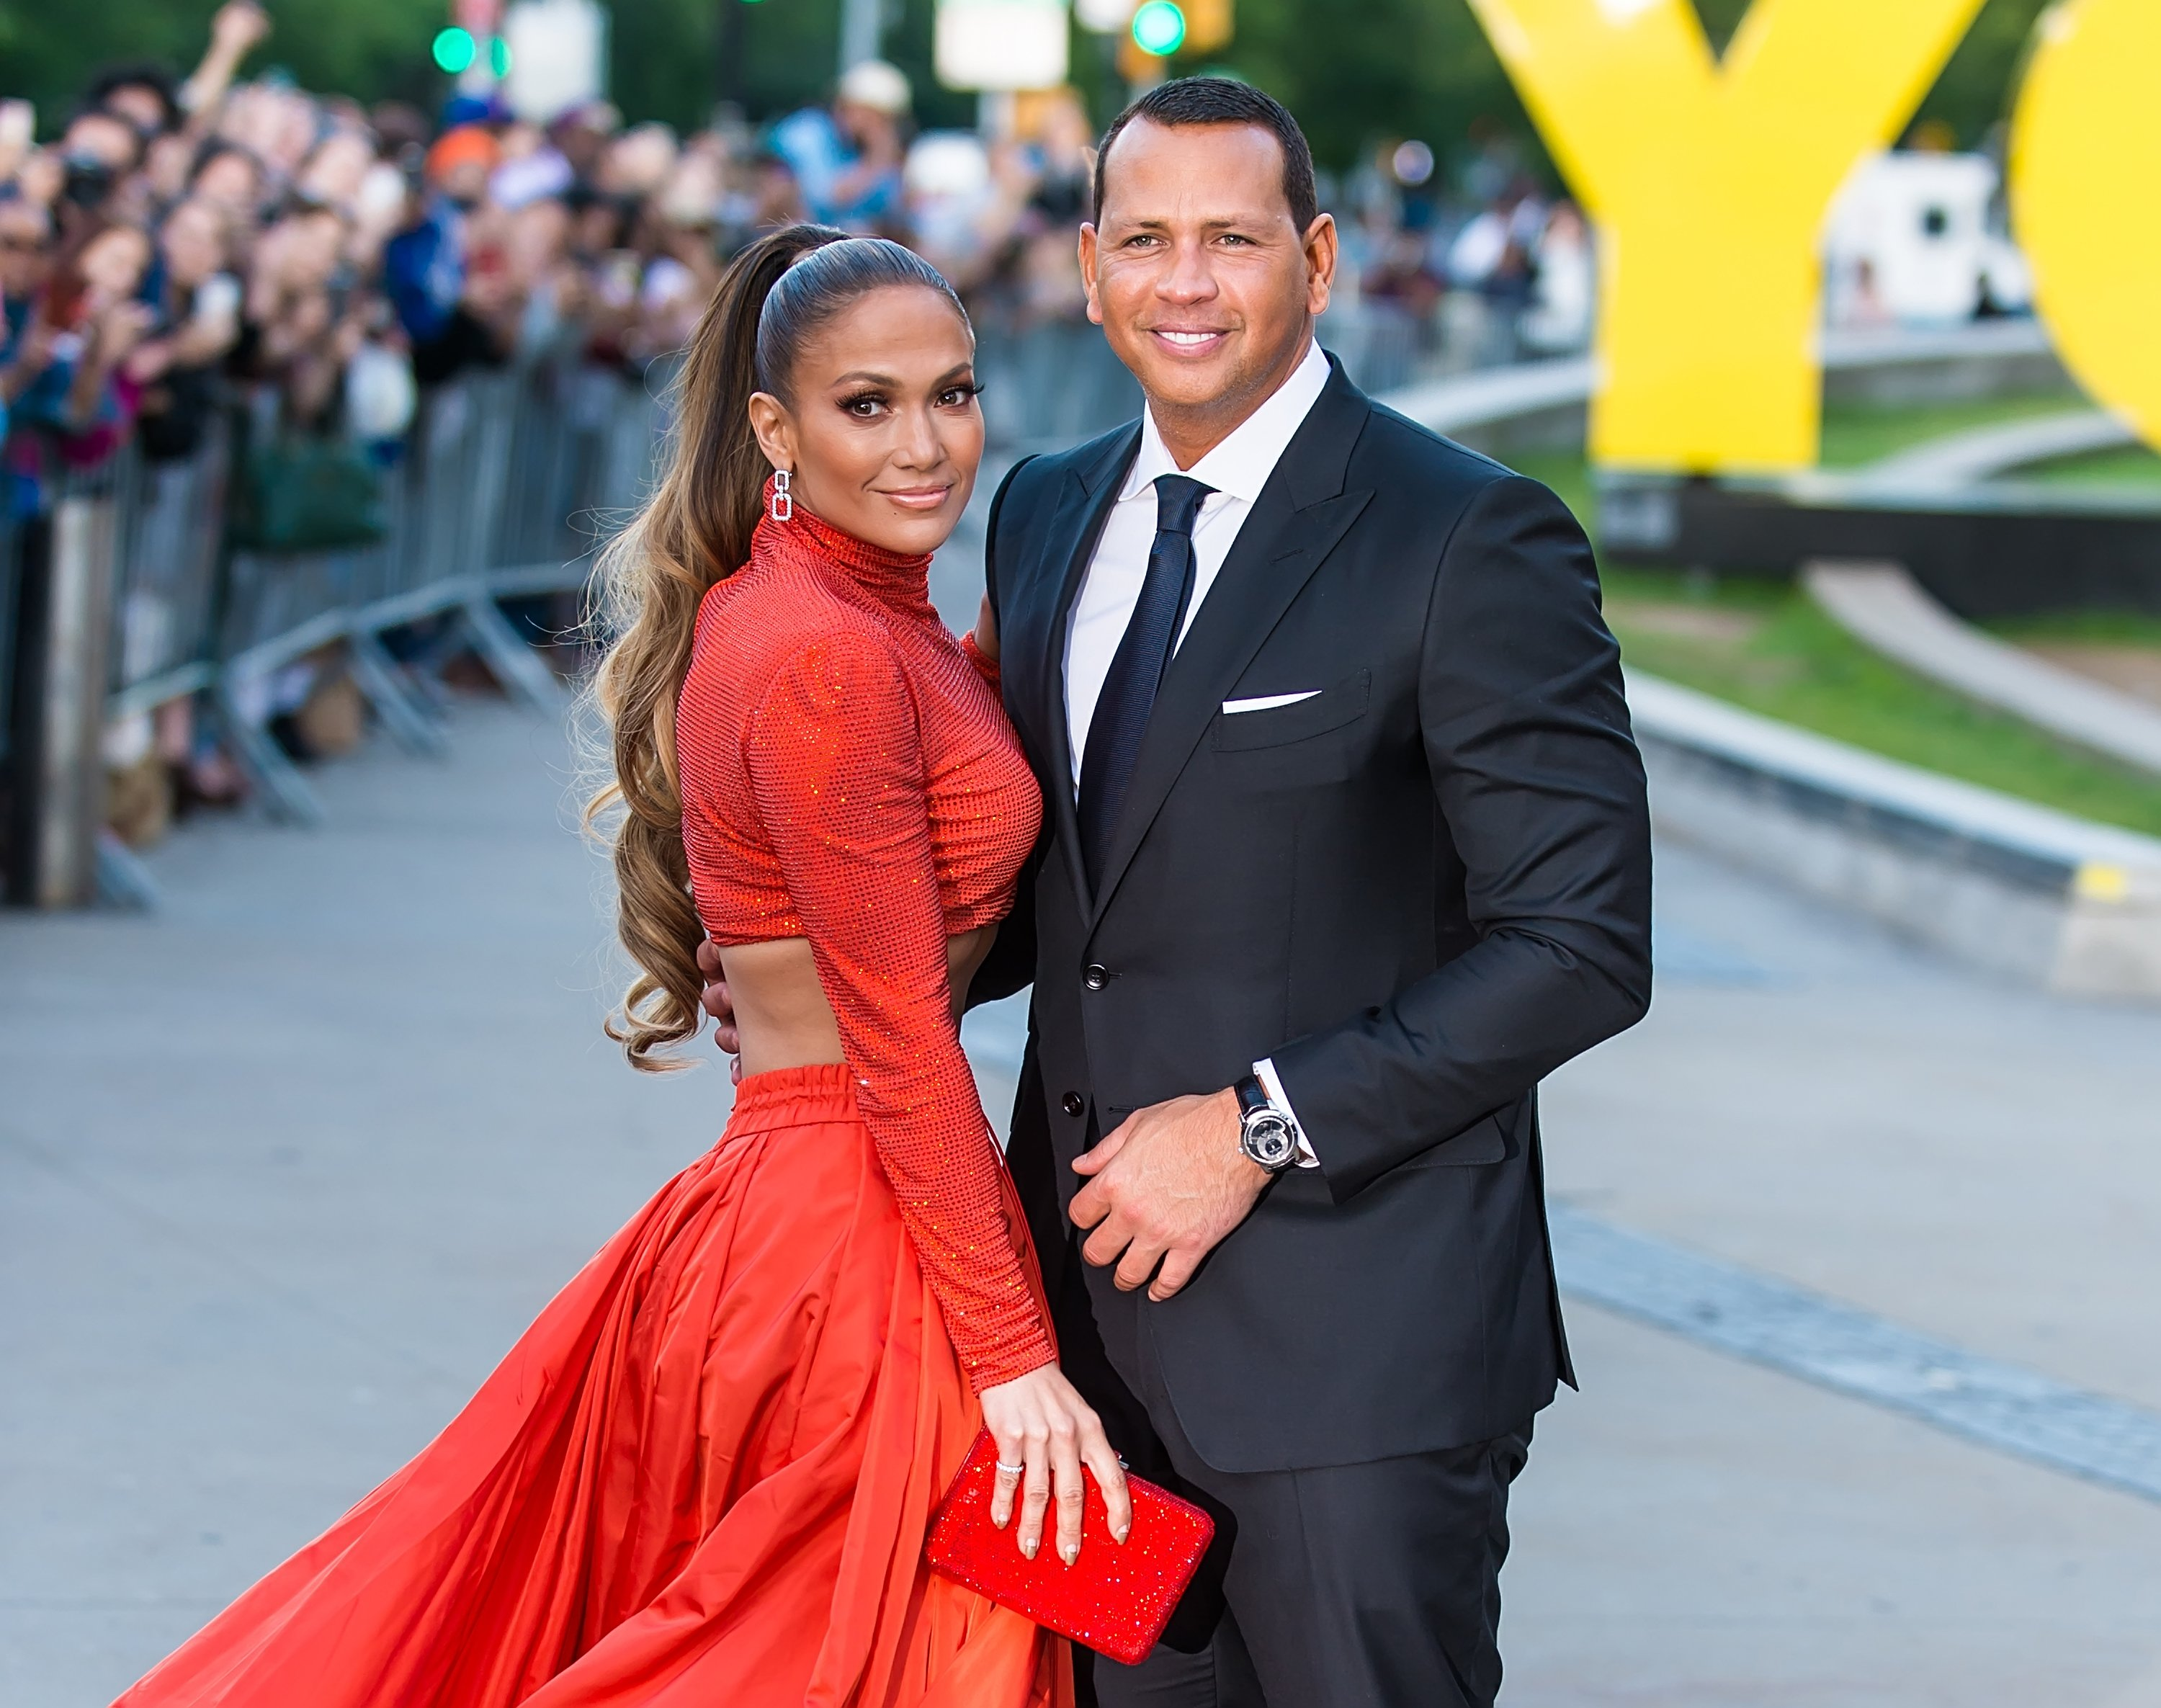 Jennifer Lopez and Alex Rodriguez arriving to the 2019 CFDA Fashion Awards on June 3, 2019. | Photo: Getty Images